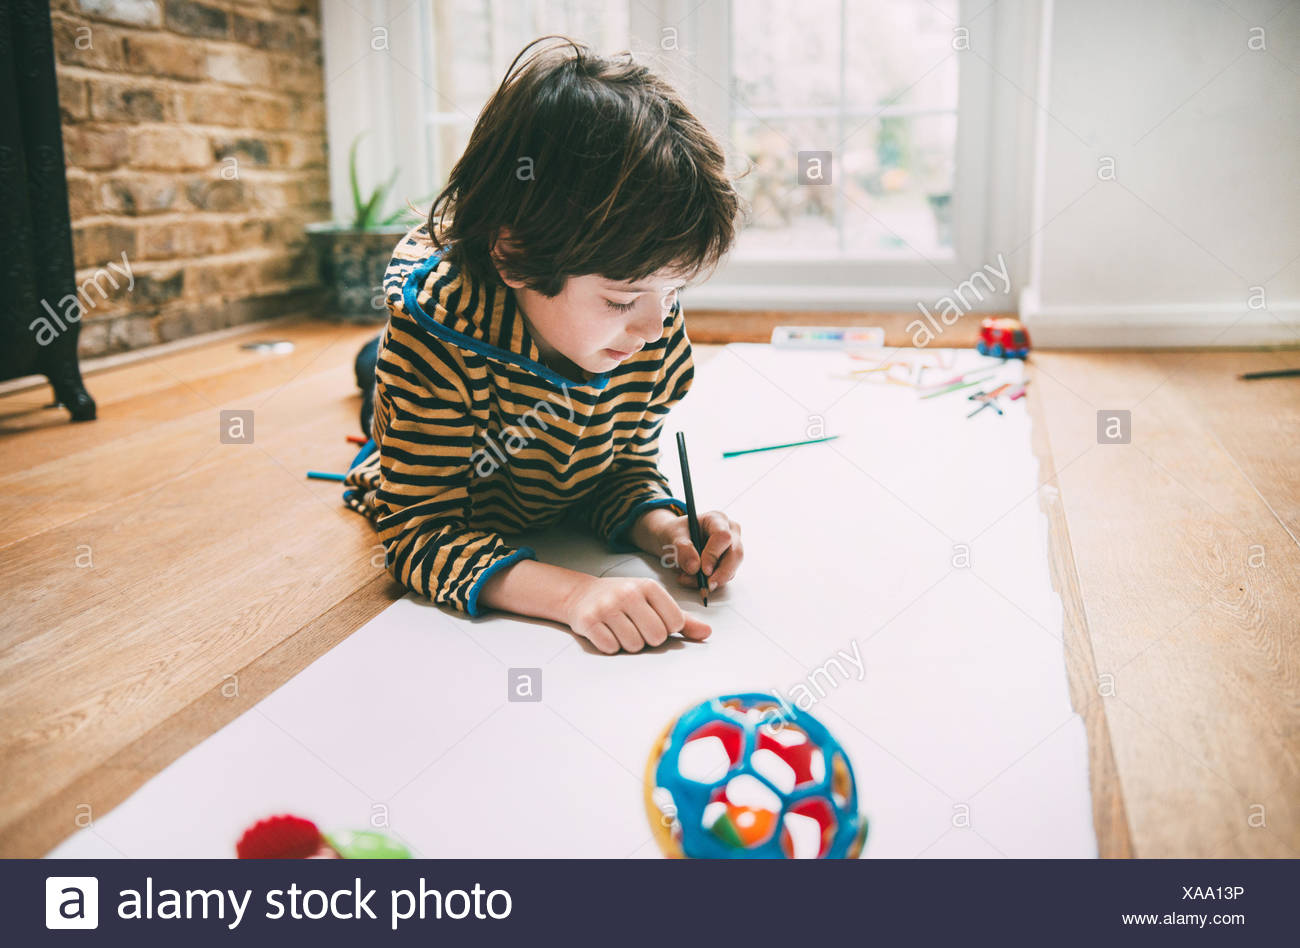 Boy lying on floor drawing on long paper - Stock Image